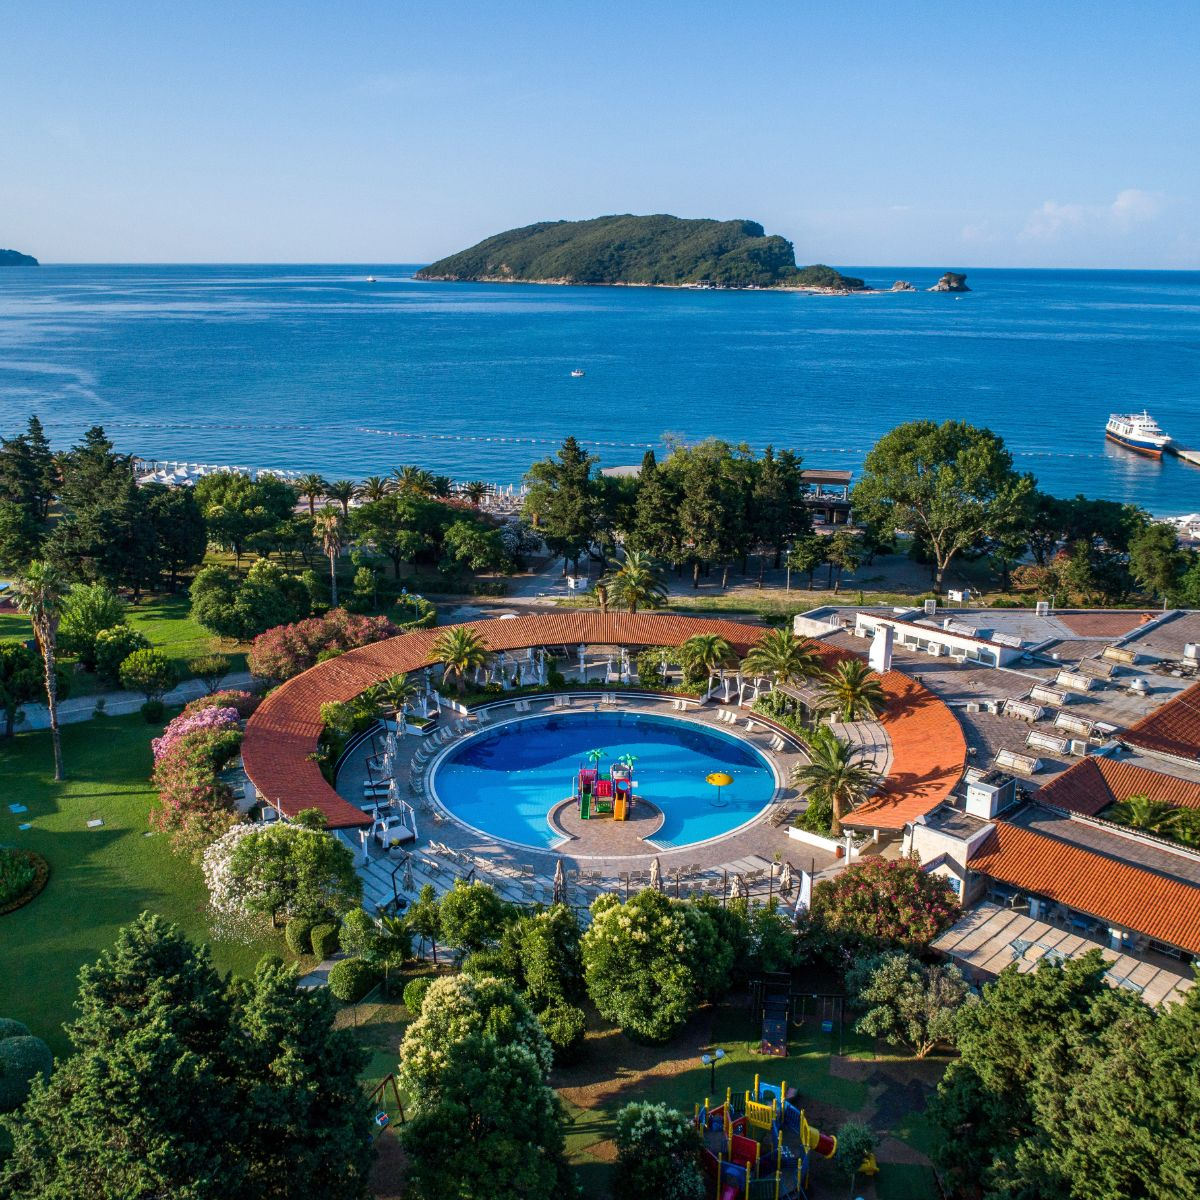 Resort Slovenska Plaza - Beaches&Pools